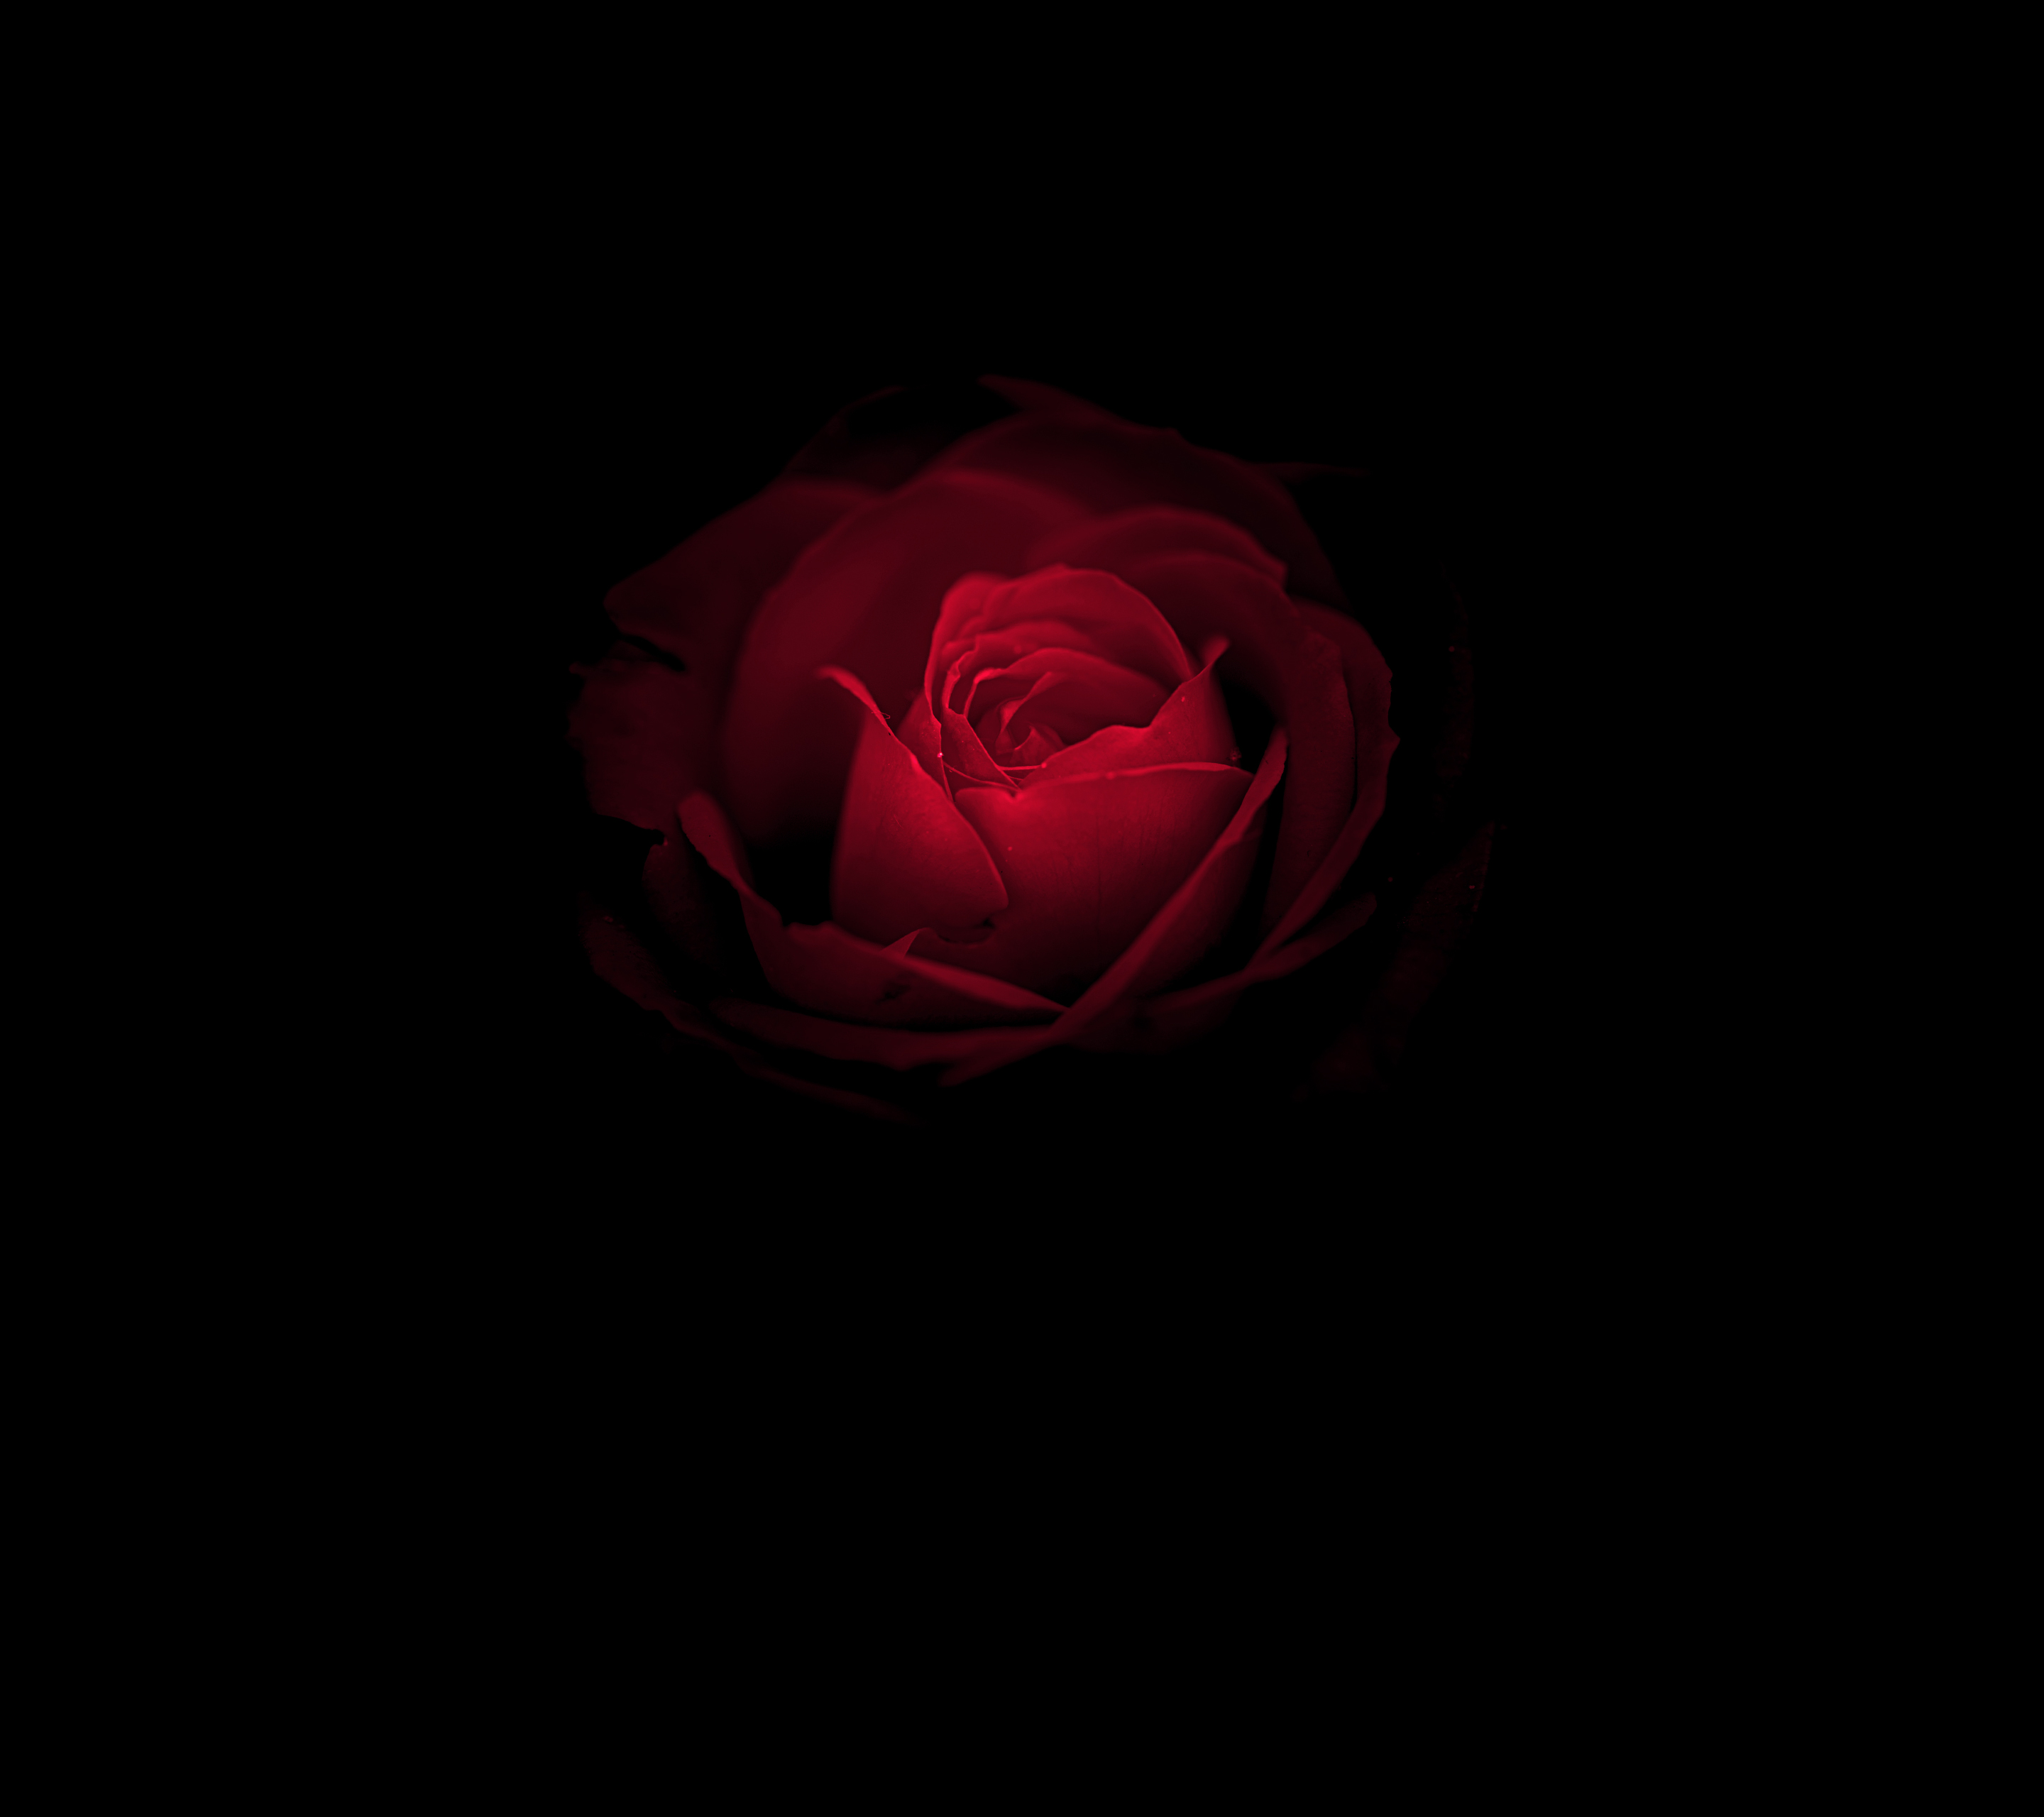 Wallpaper Of Rose Posted By Christopher Peltier